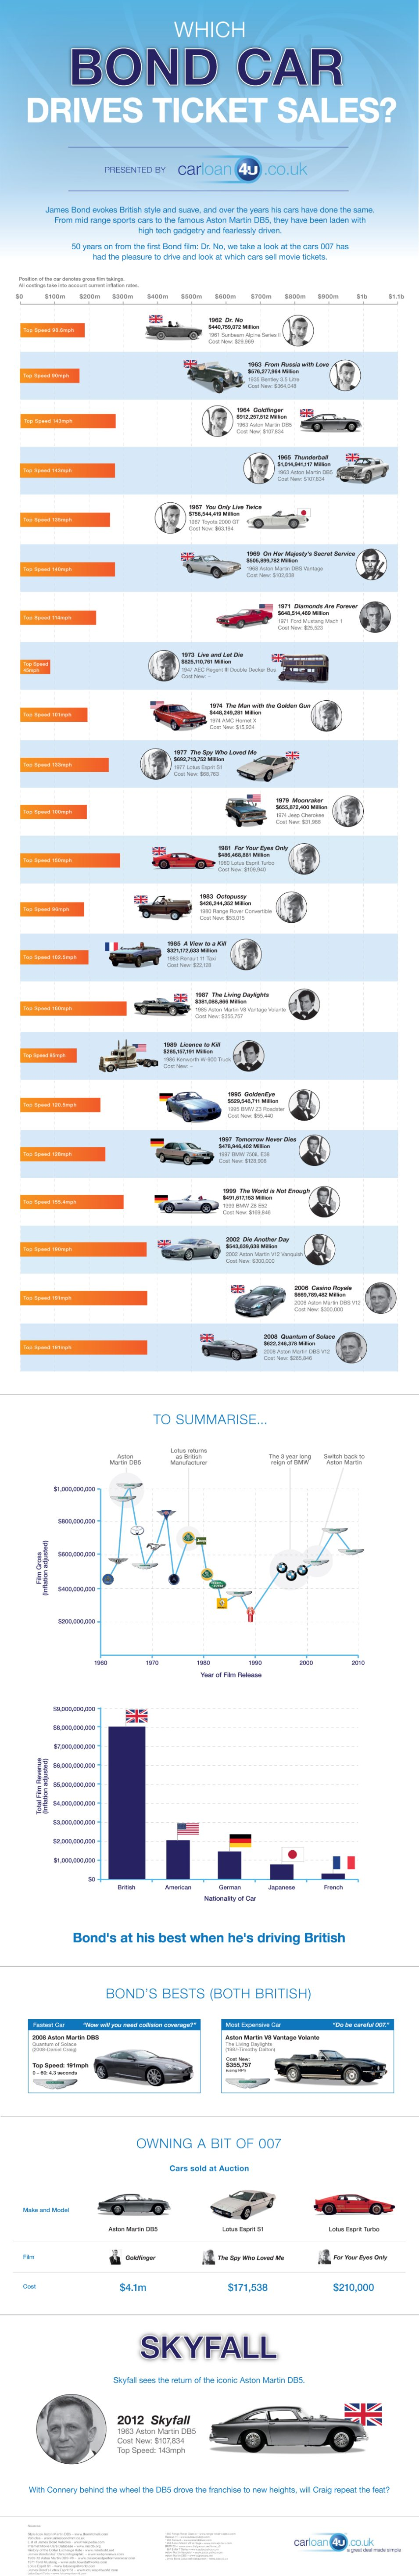 11. Which Bond Car drives ticket sales